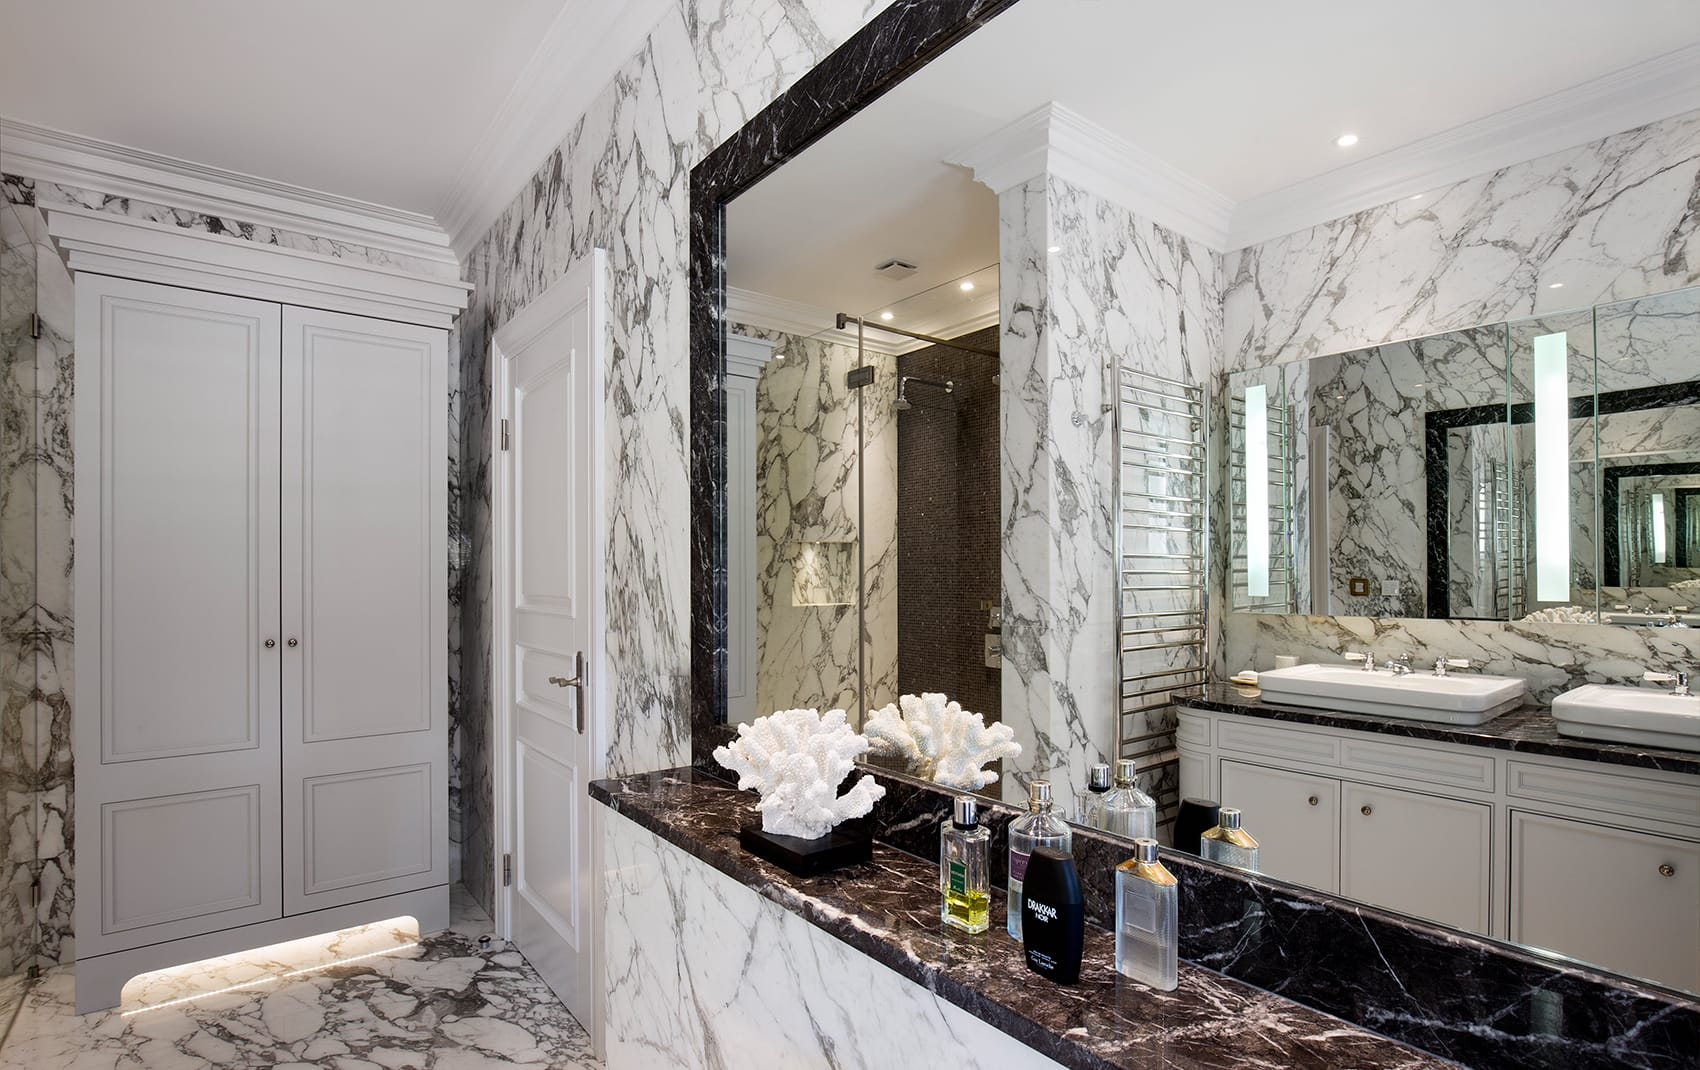 Luxury marble bathroom design London